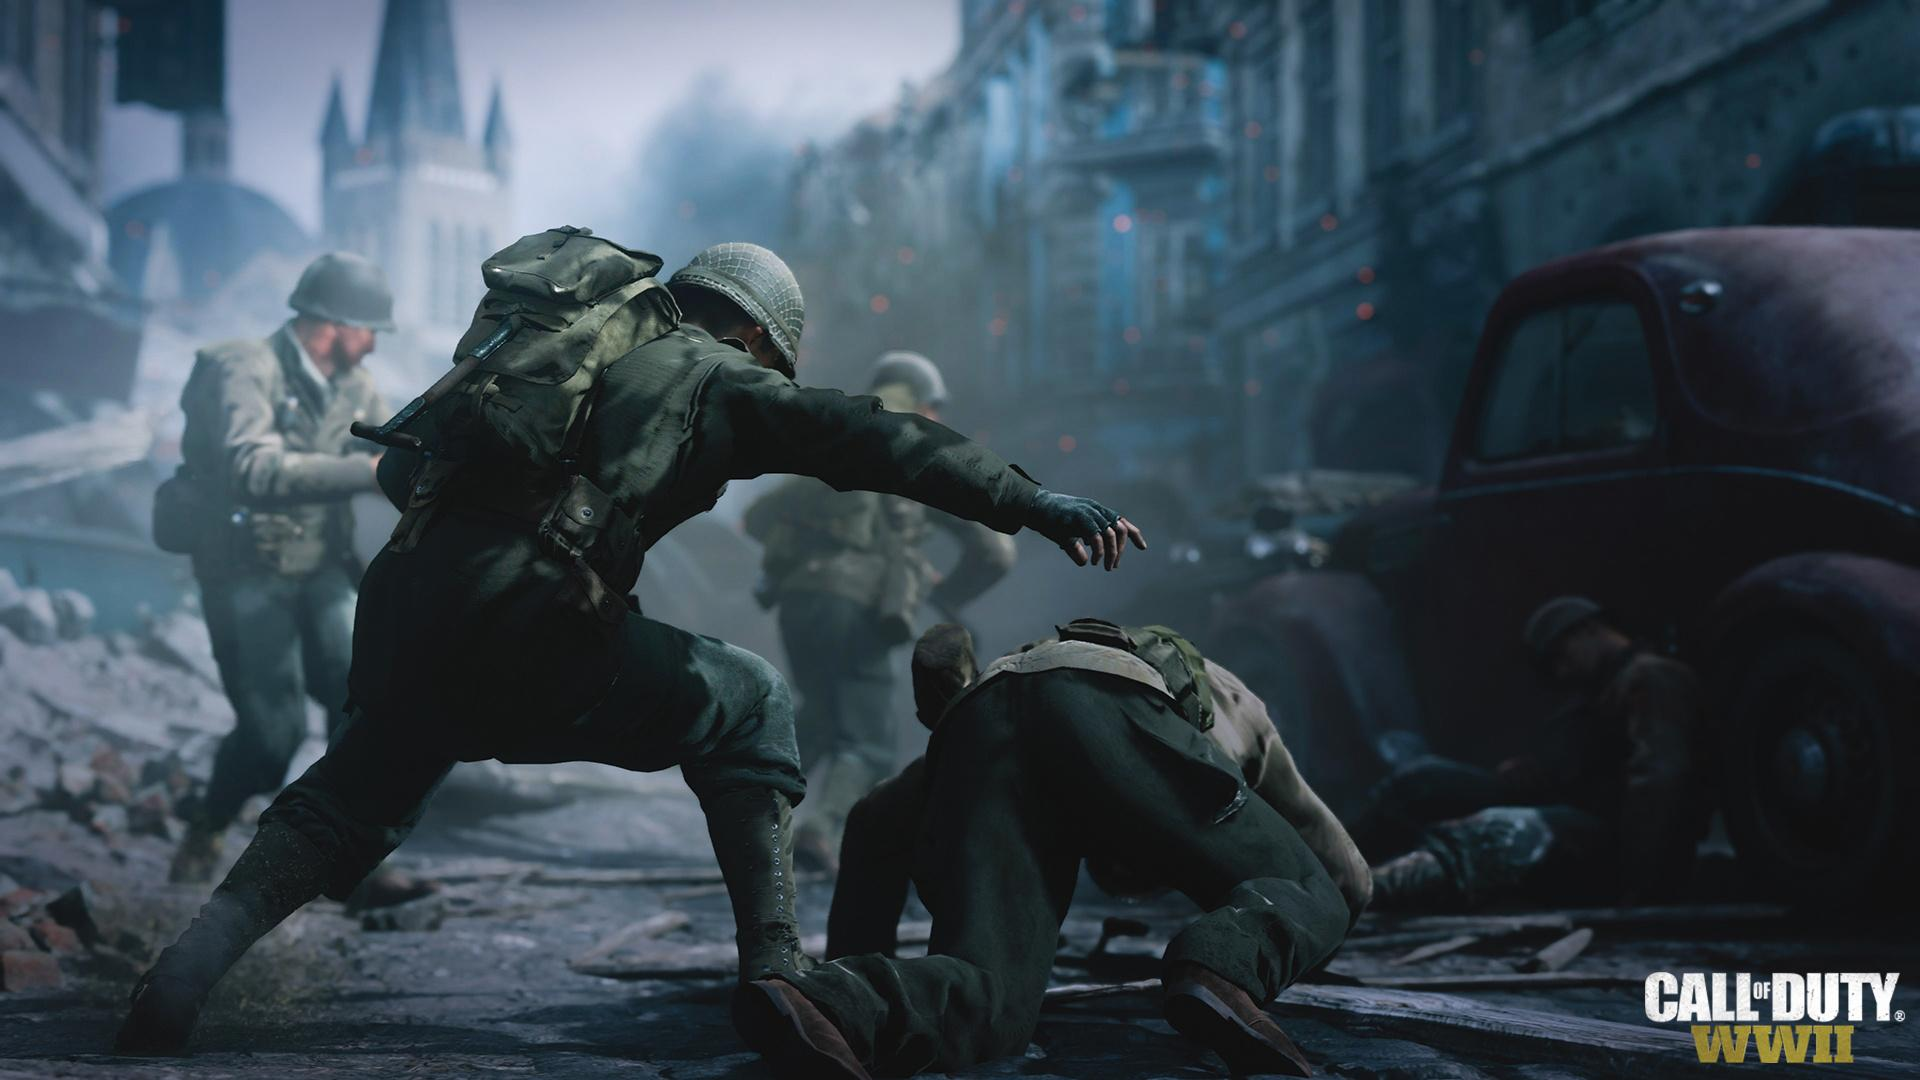 Call of Duty World War II